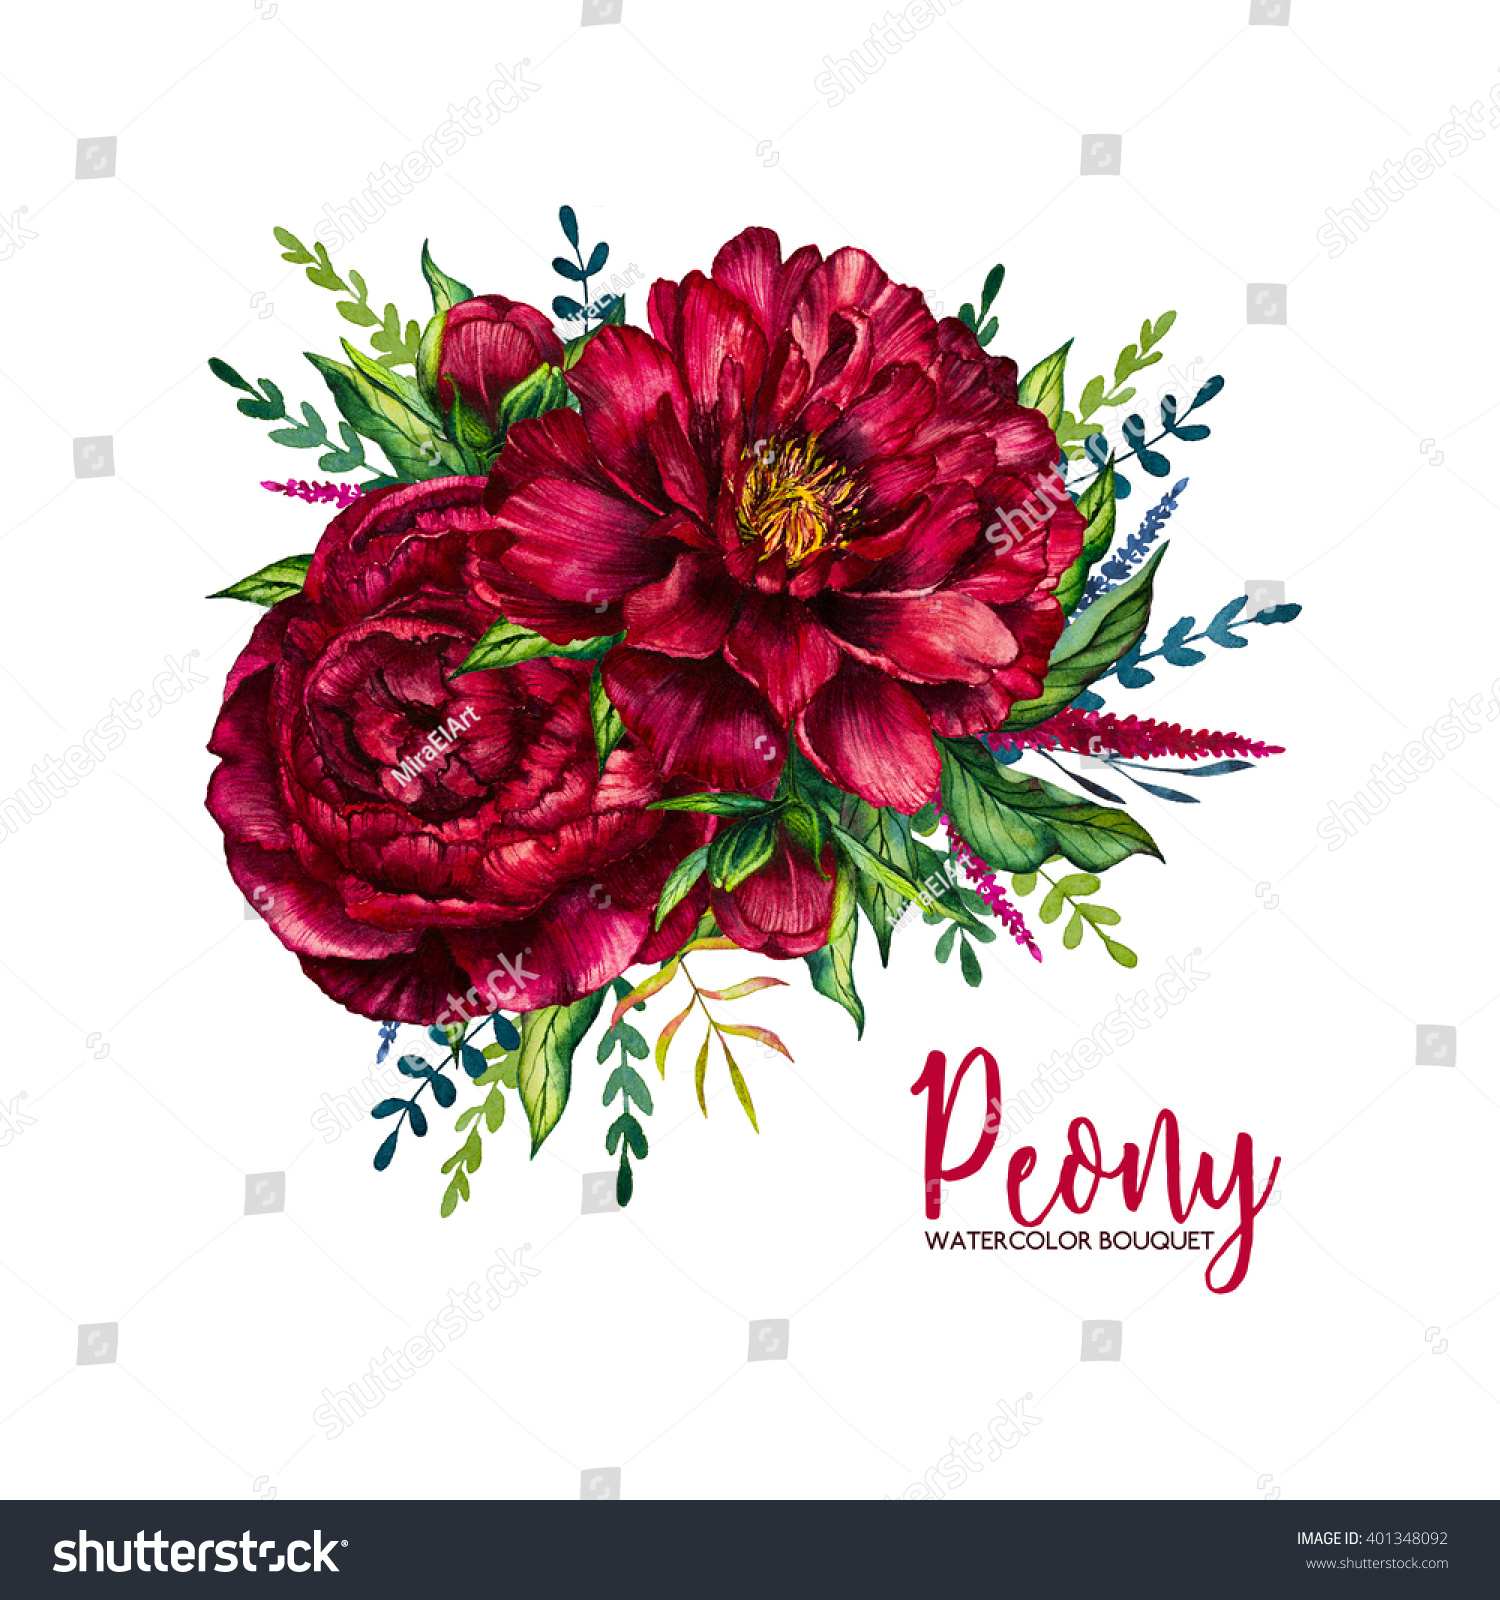 Watercolor Peony Bouquet Watercolor Red Flower Stock Illustration ...